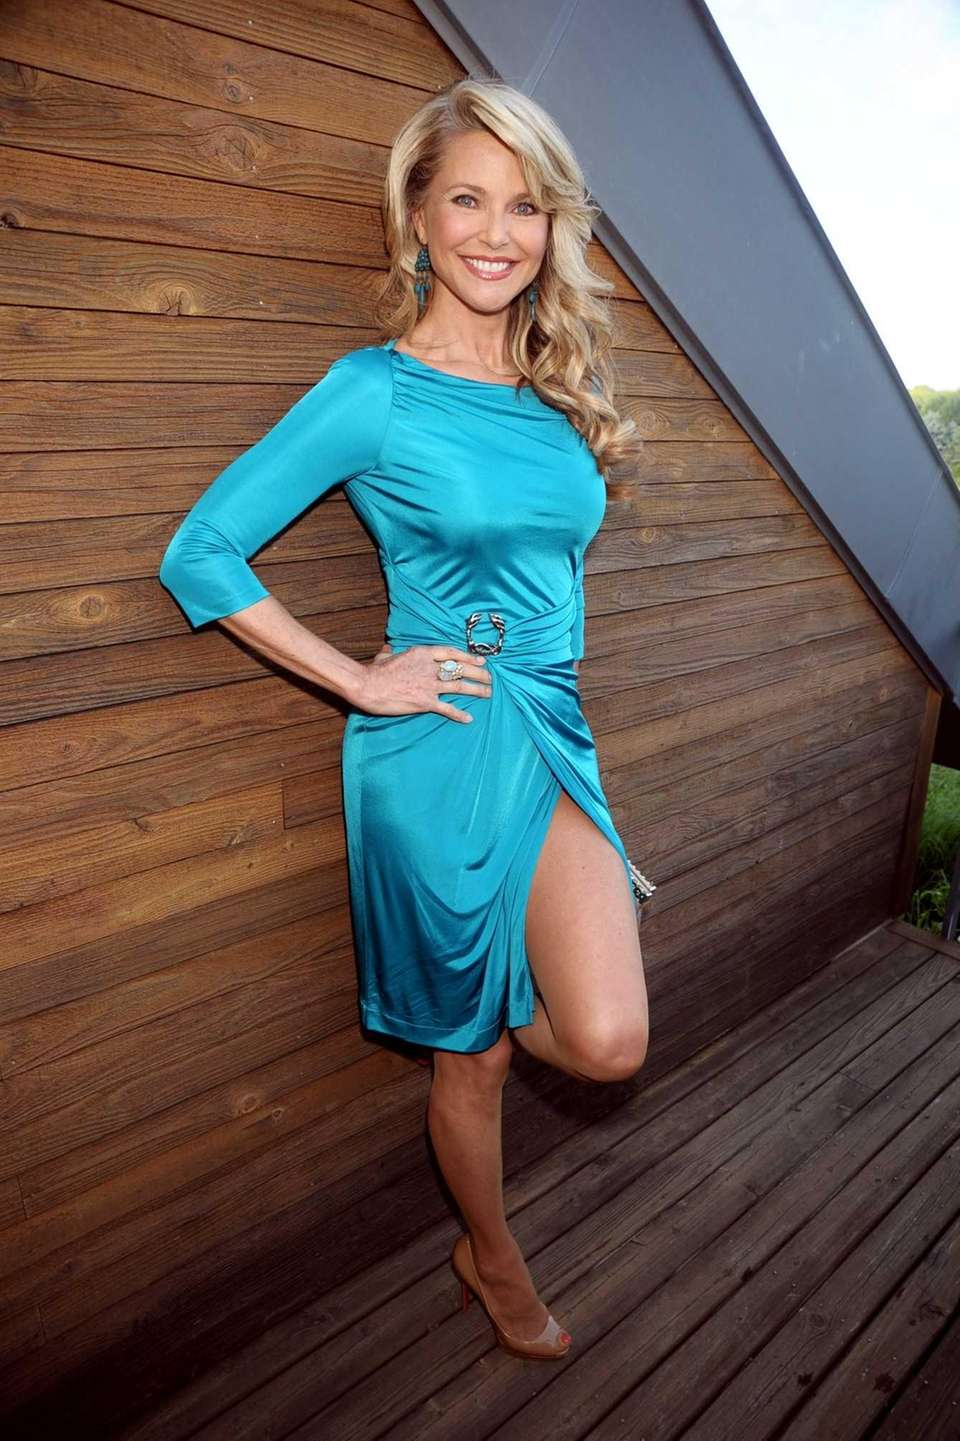 Christie Brinkley was honored at the South Fork